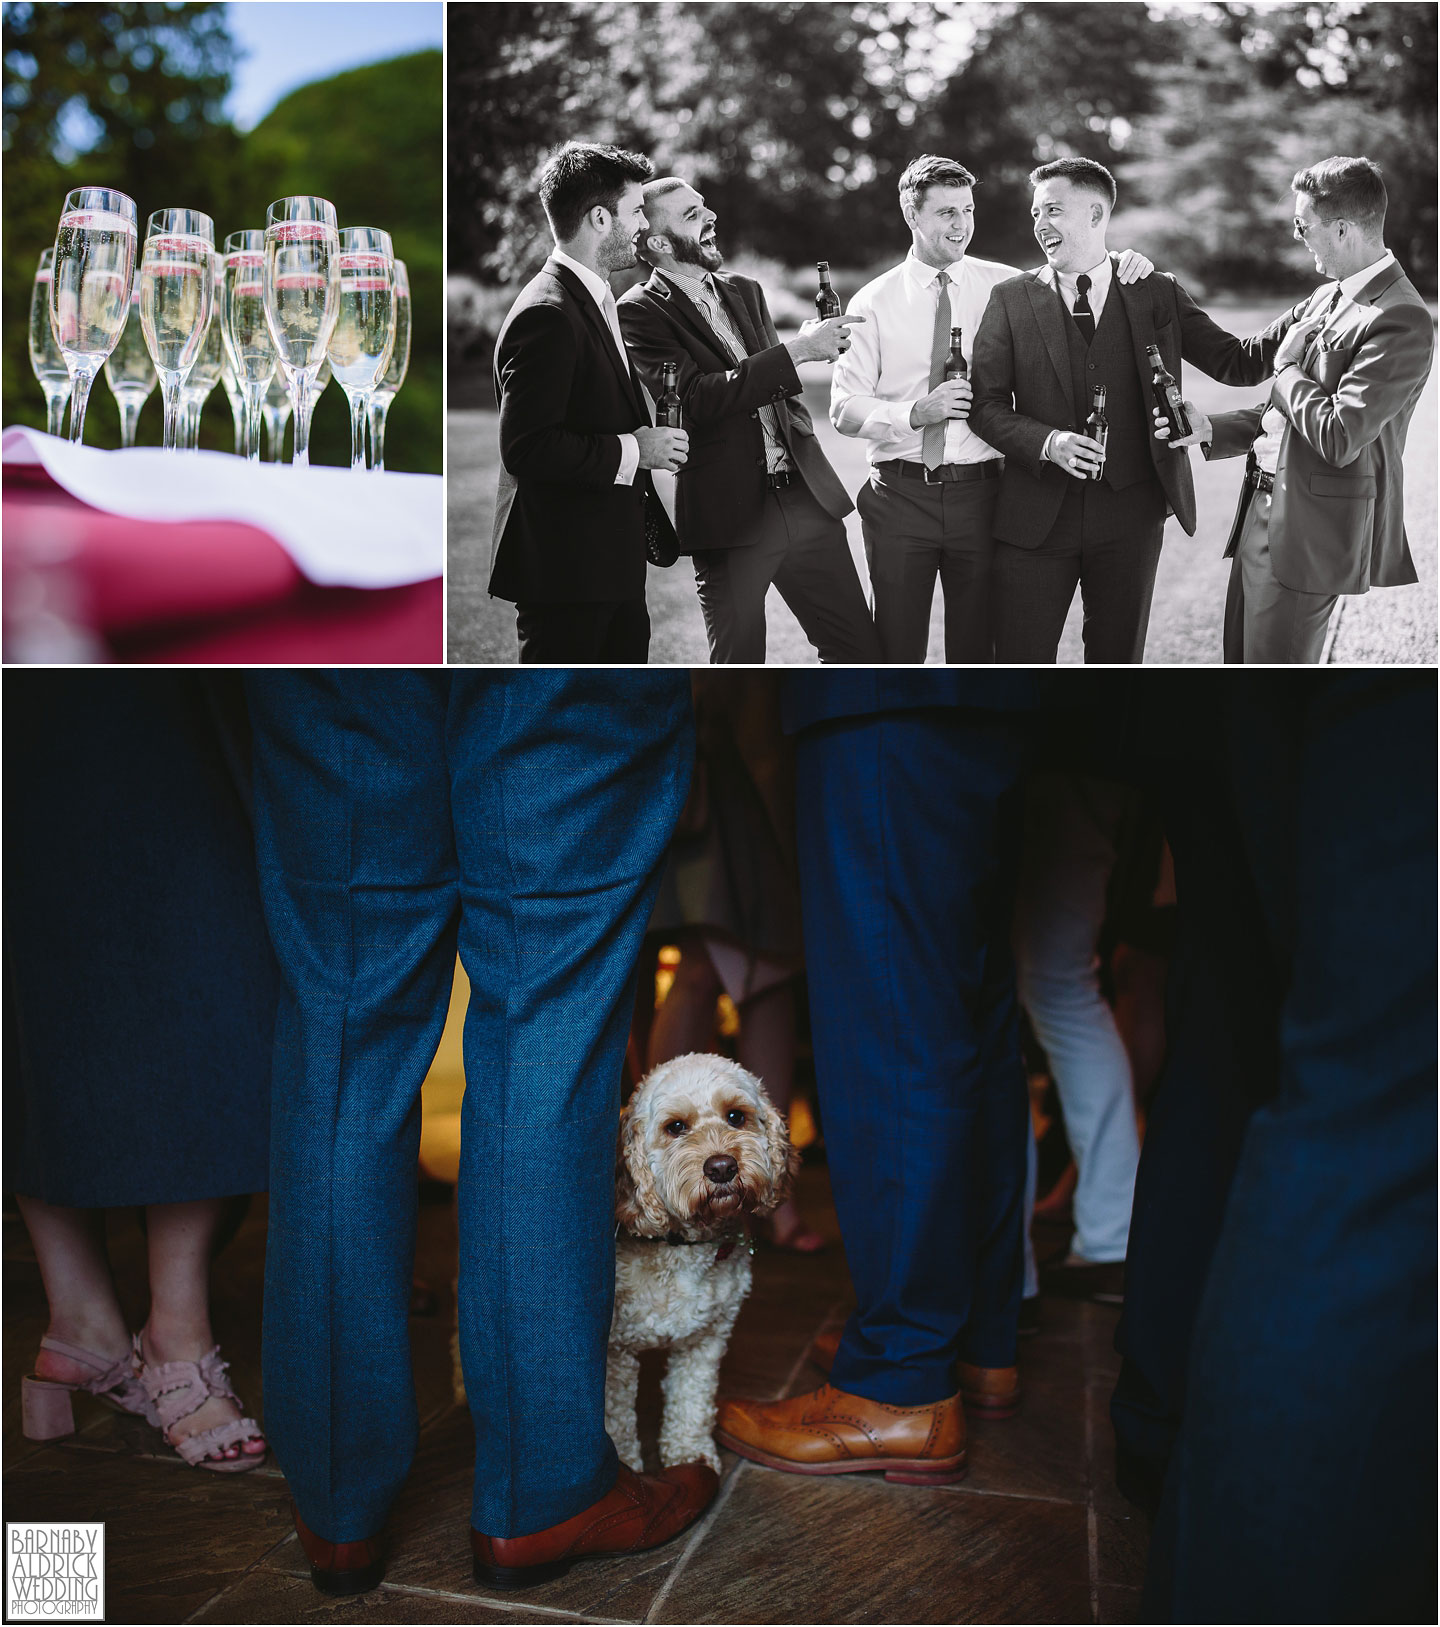 Dog guest wedding photo at Priory Cottages near Wetherby, Amazing Yorkshire Wedding Photos, Best Yorkshire Wedding Photos 2018